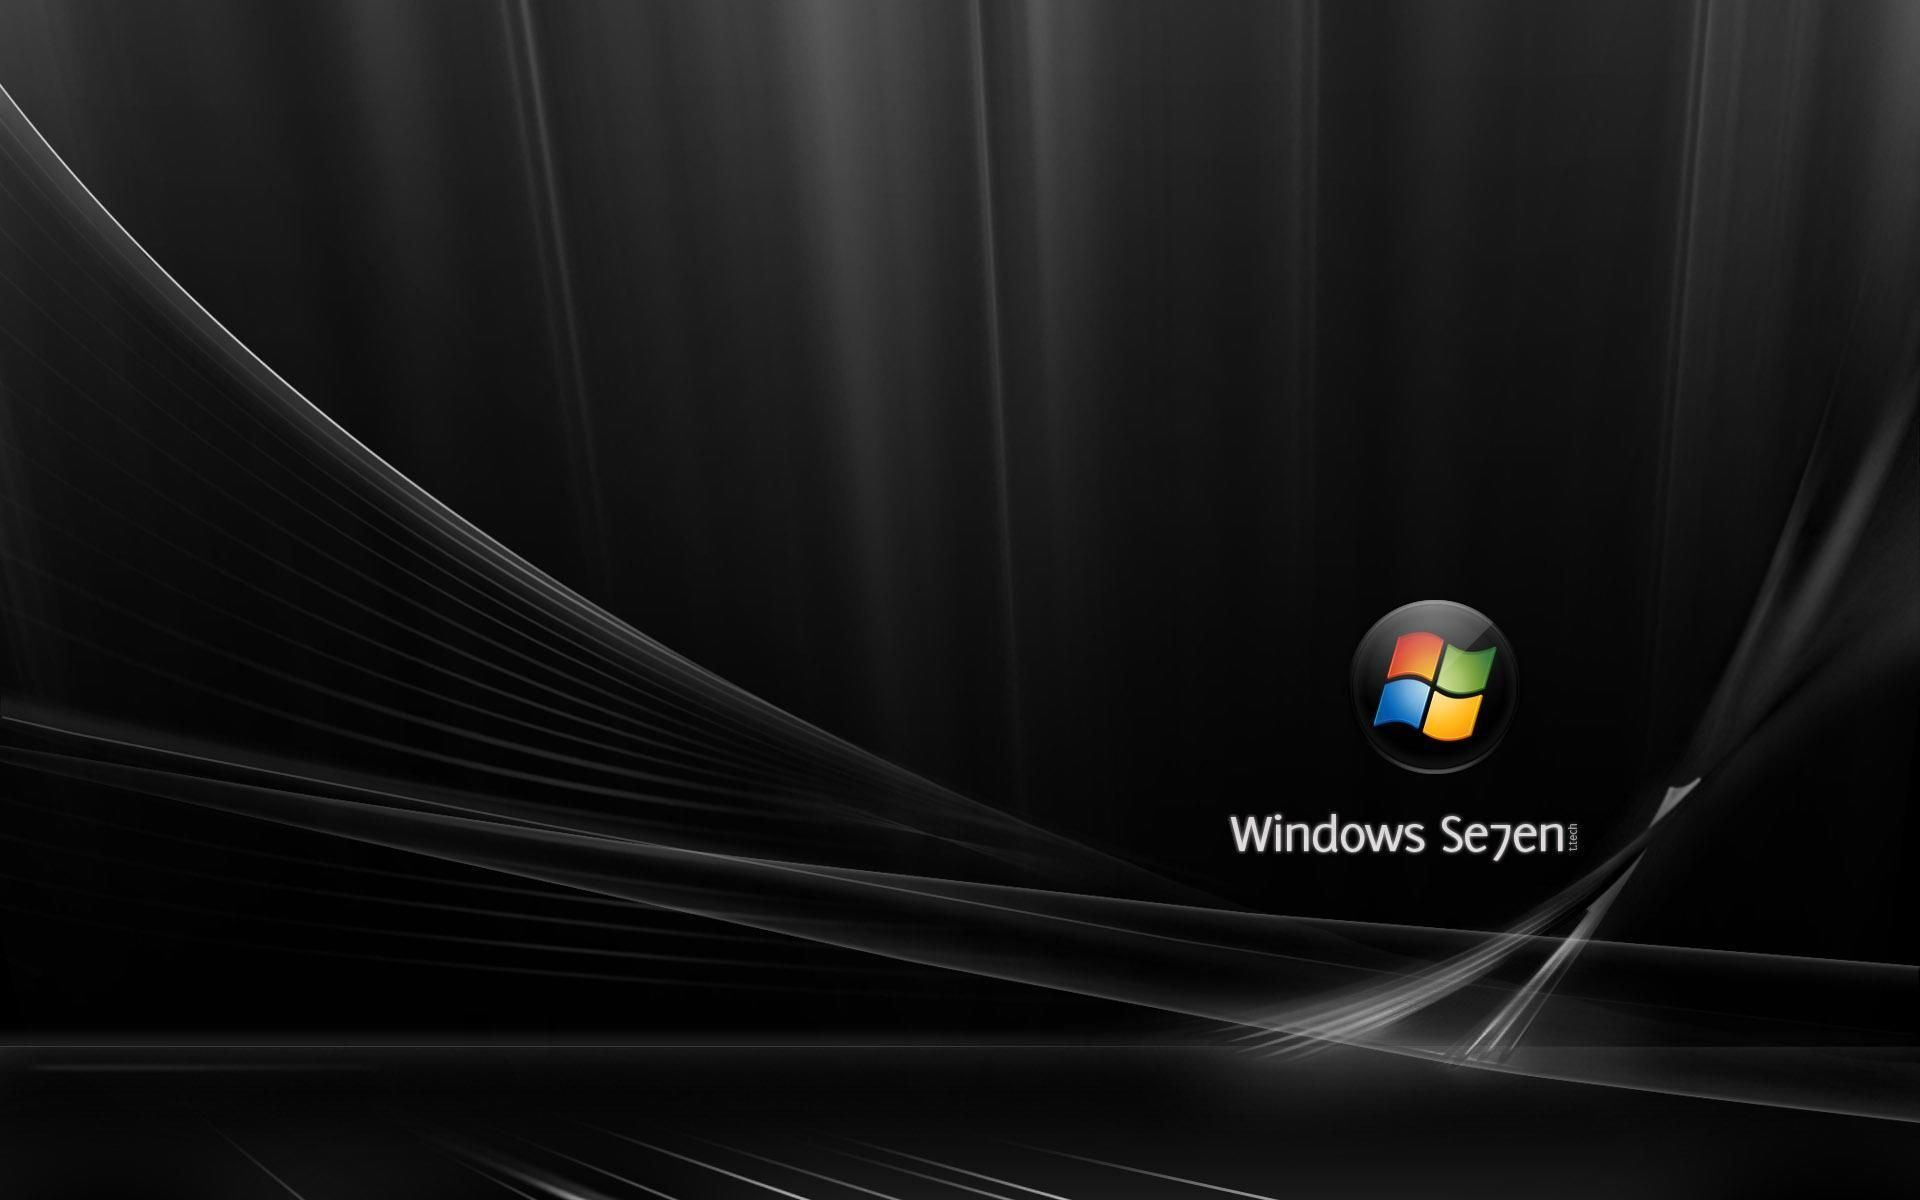 windows ultimate wallpaper hd 1920a—1080 windows 7 professional wallpapers hd 46 wallpapers